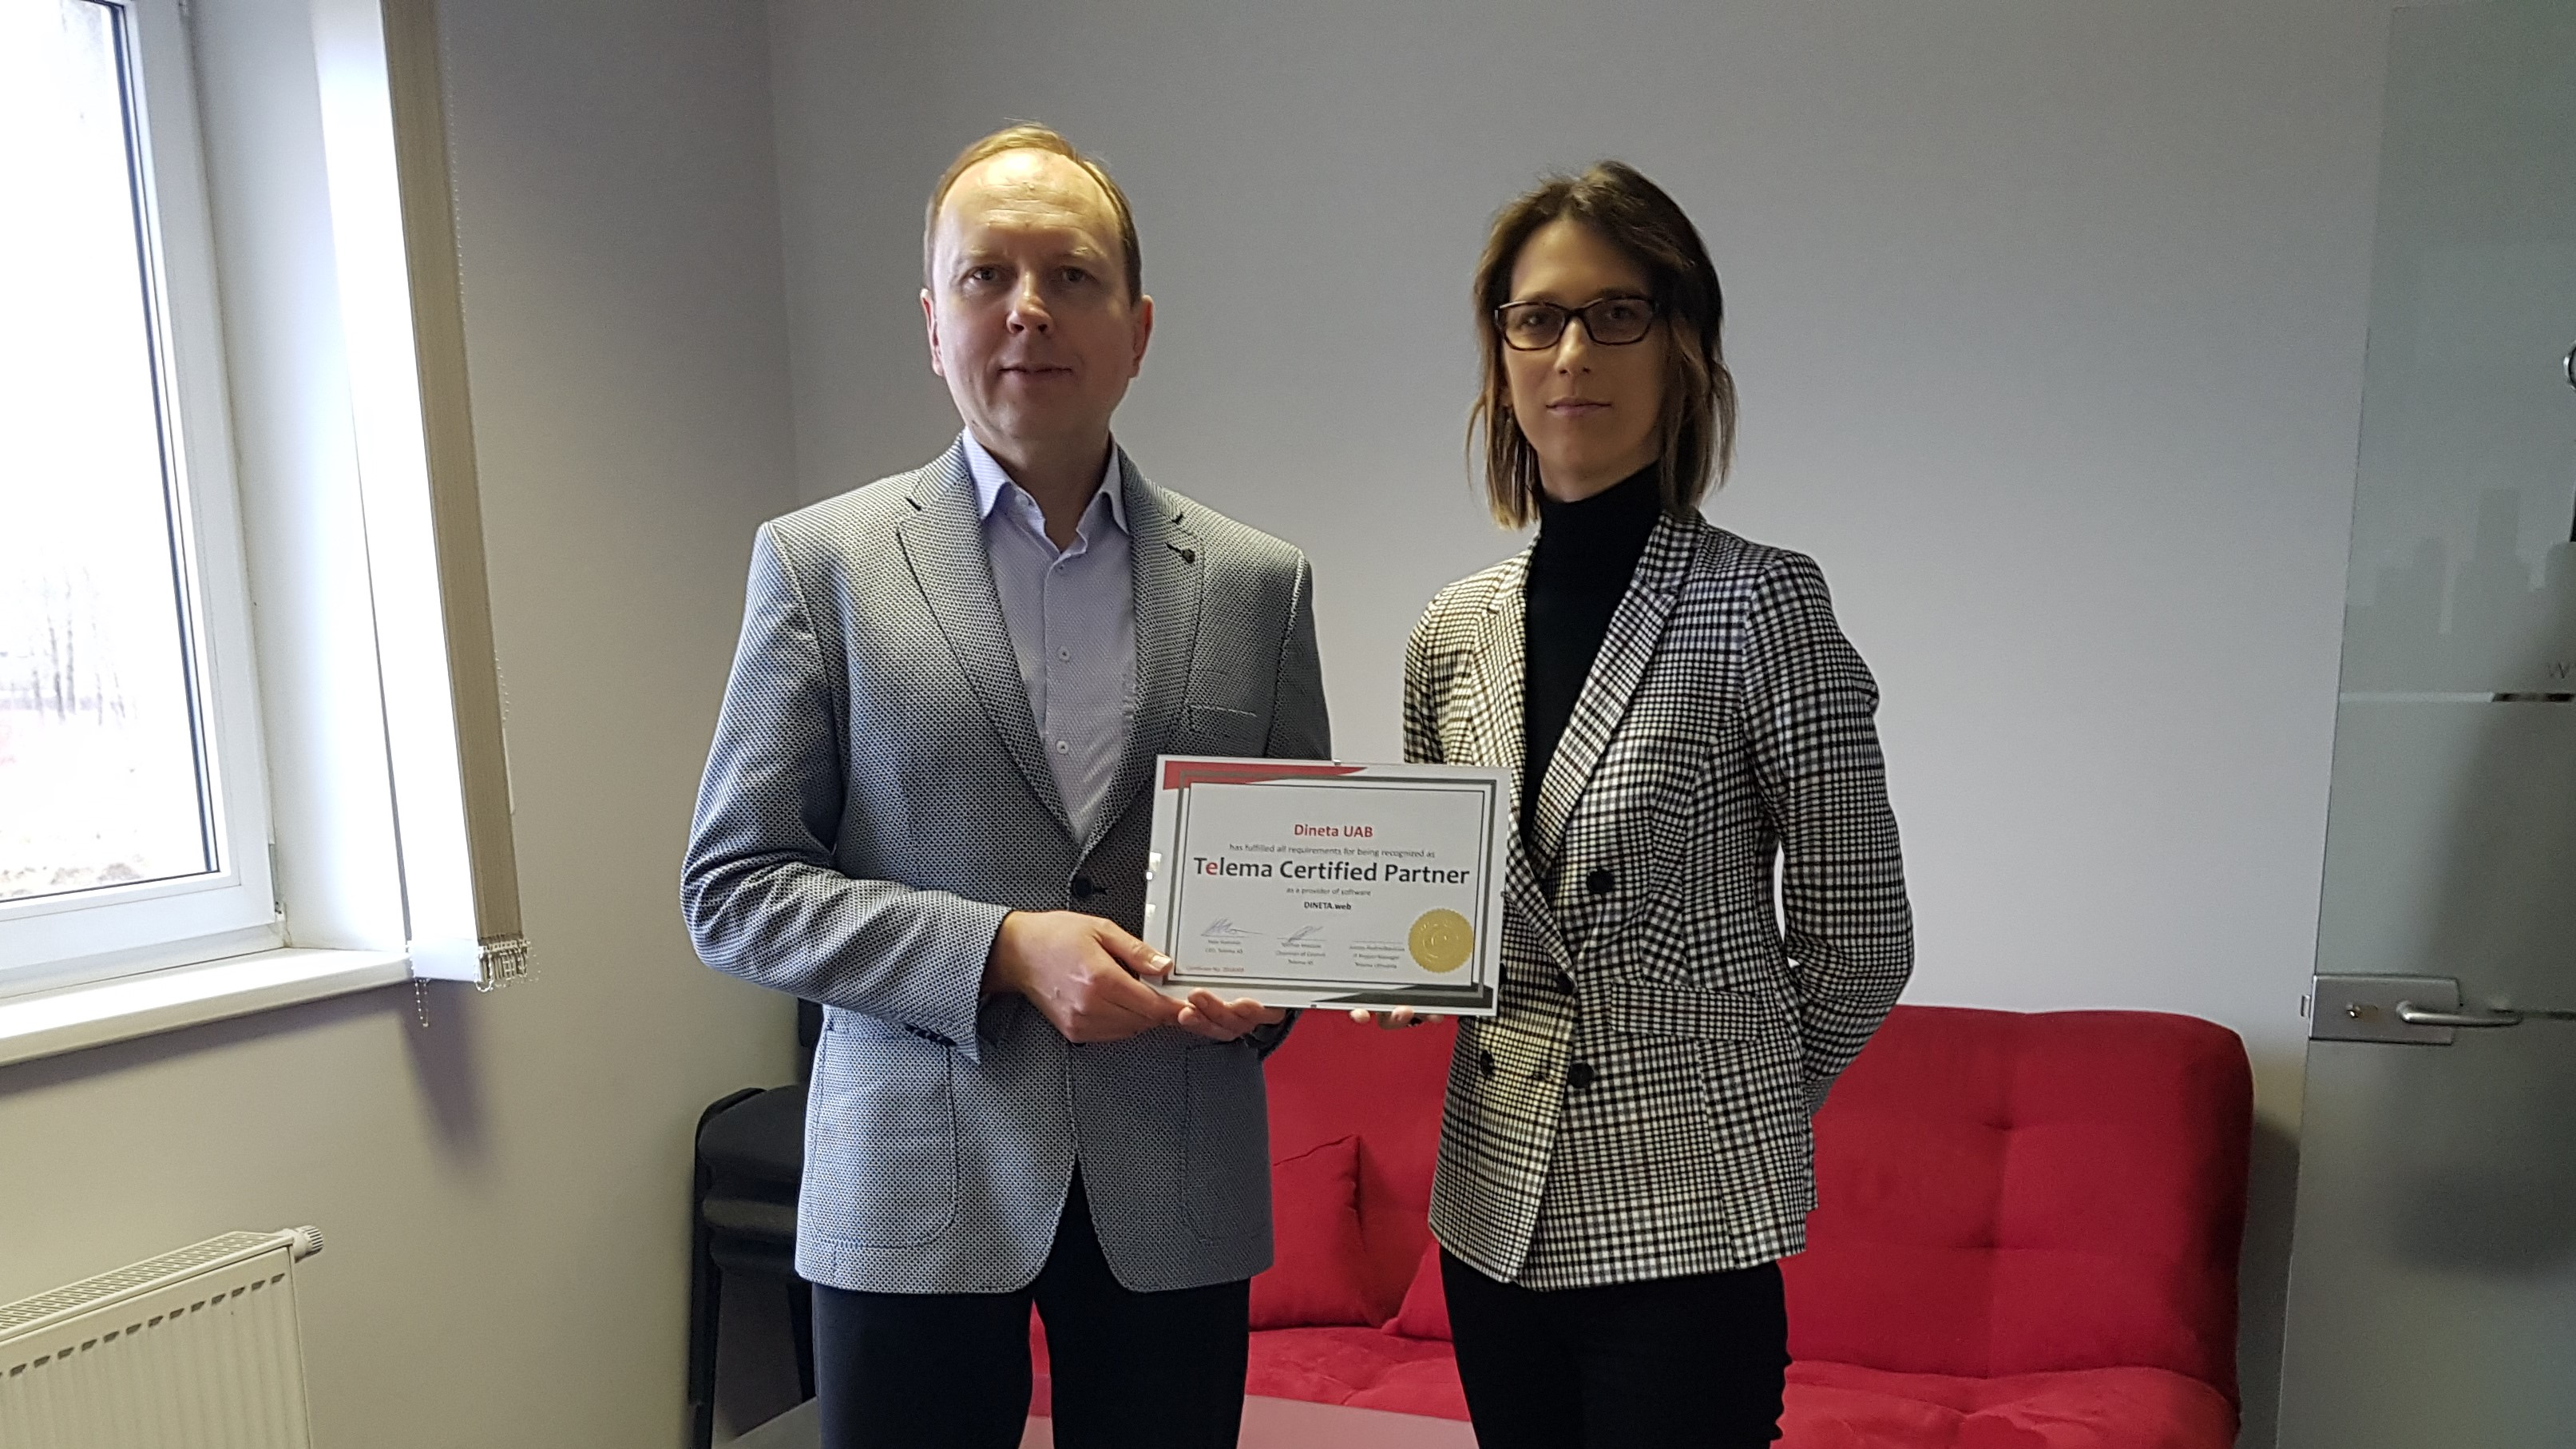 Dineta in Lithuania receives Telema certified partner status